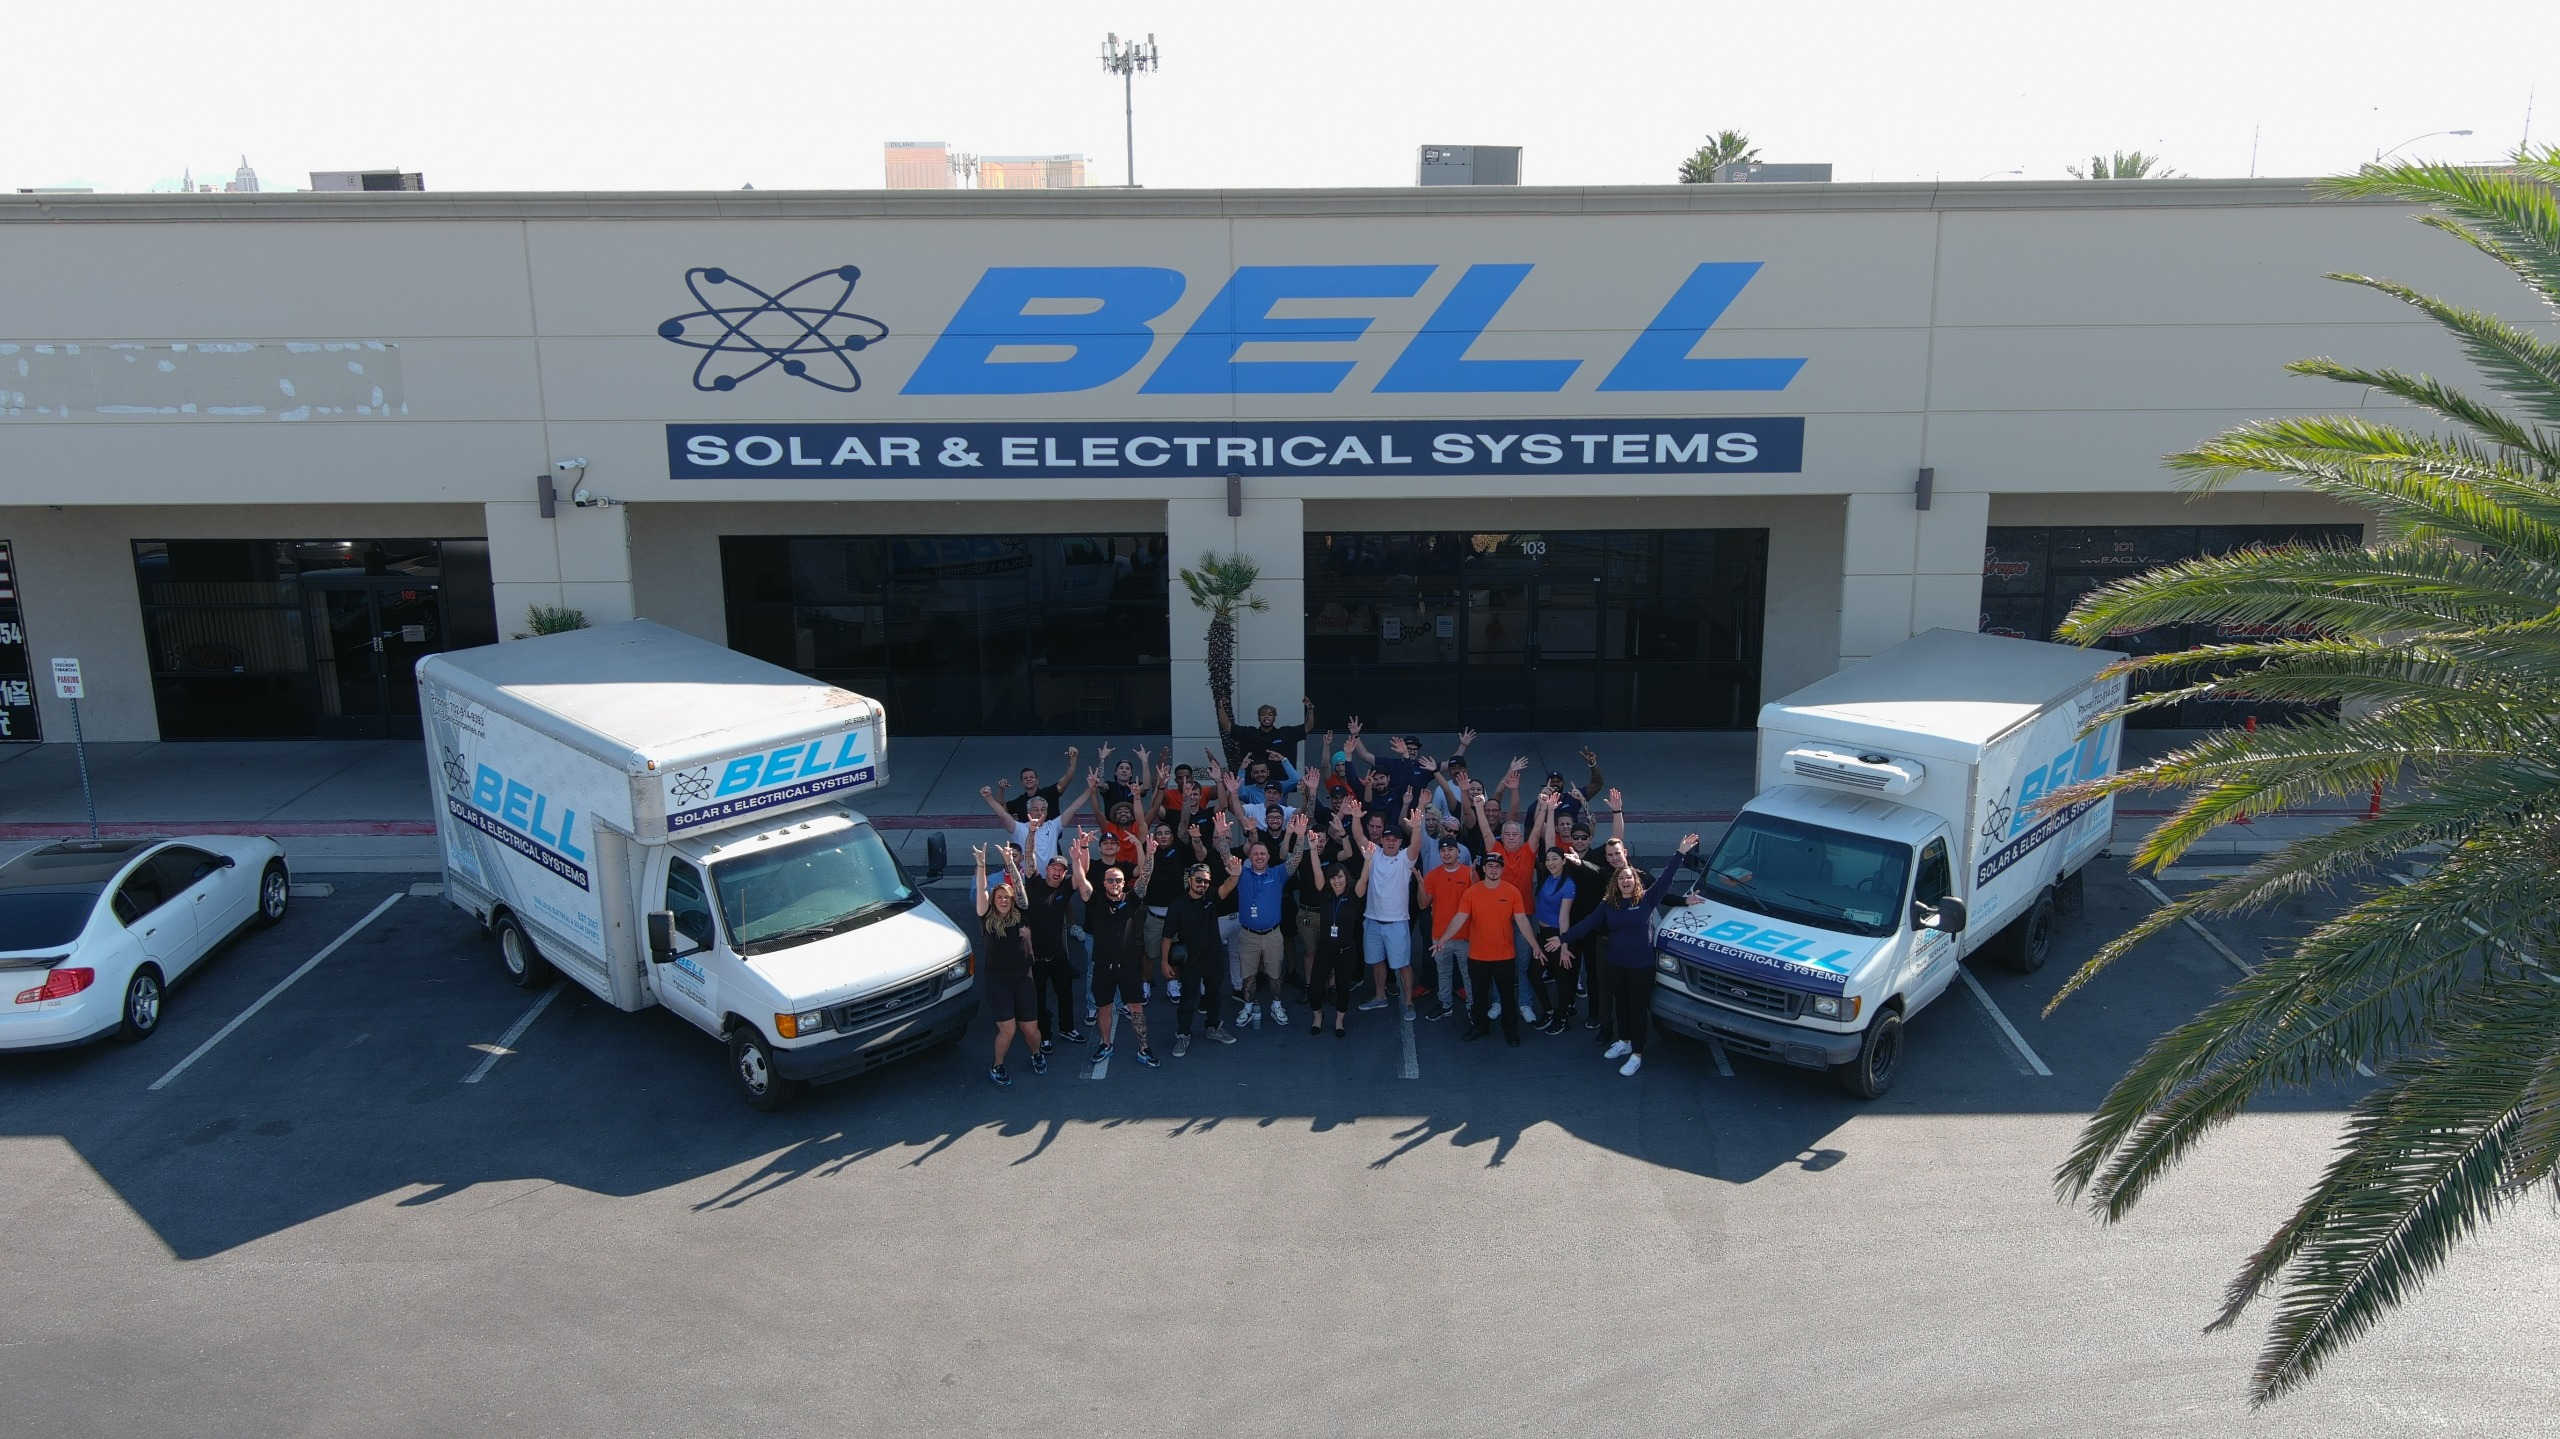 Bell Solar & Electrical Group Photo - drone shot